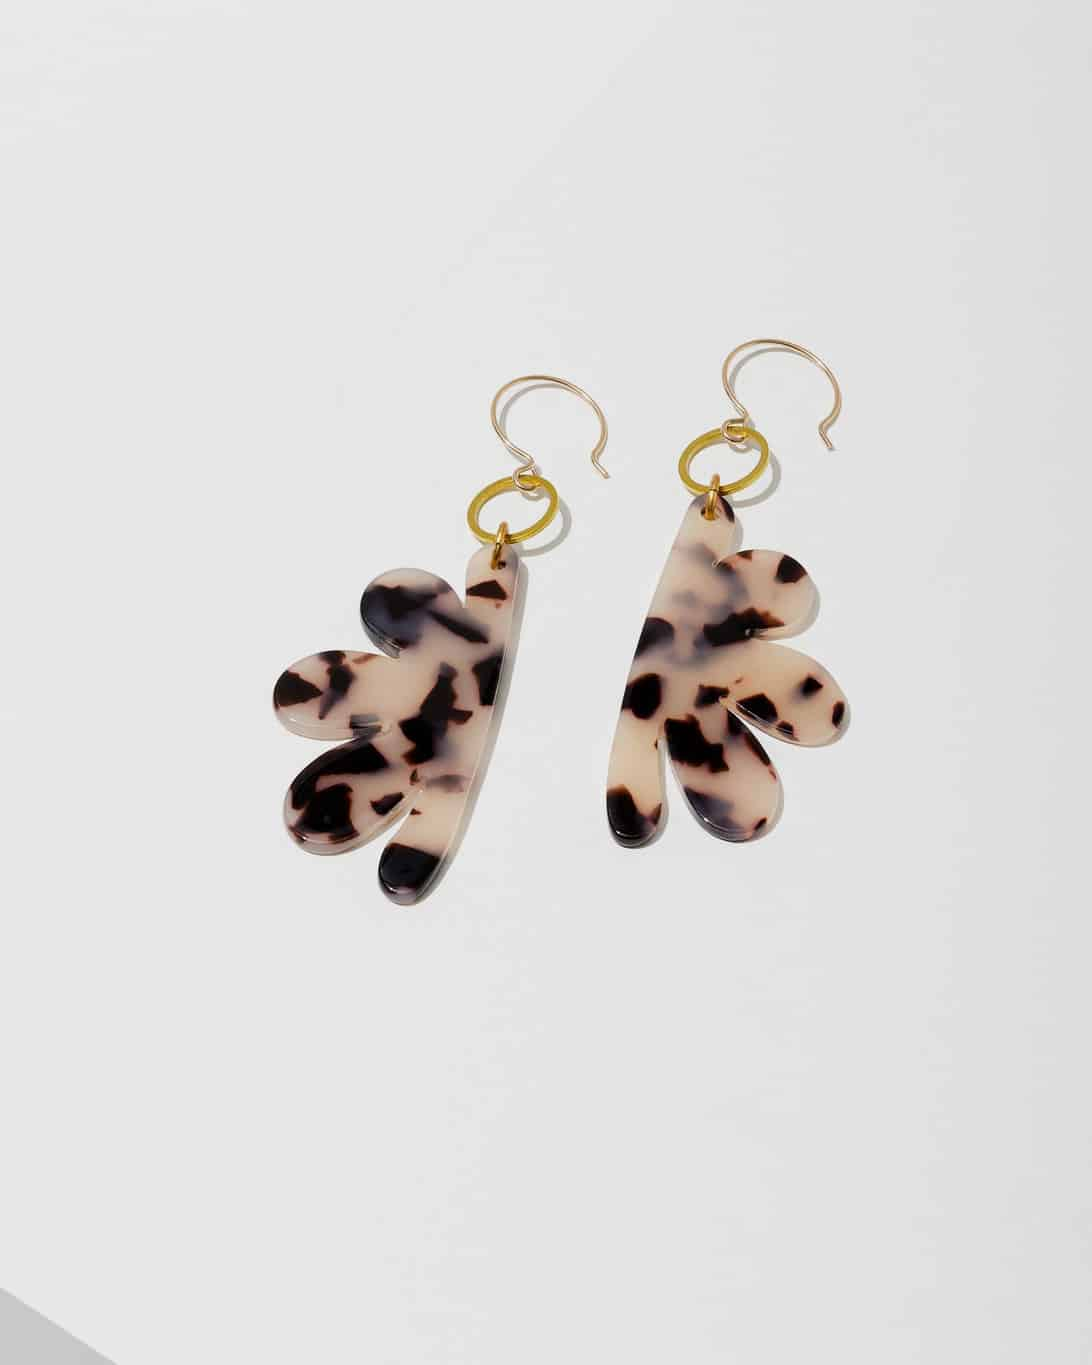 Floral shaped stone earrings with a tortoise pattern